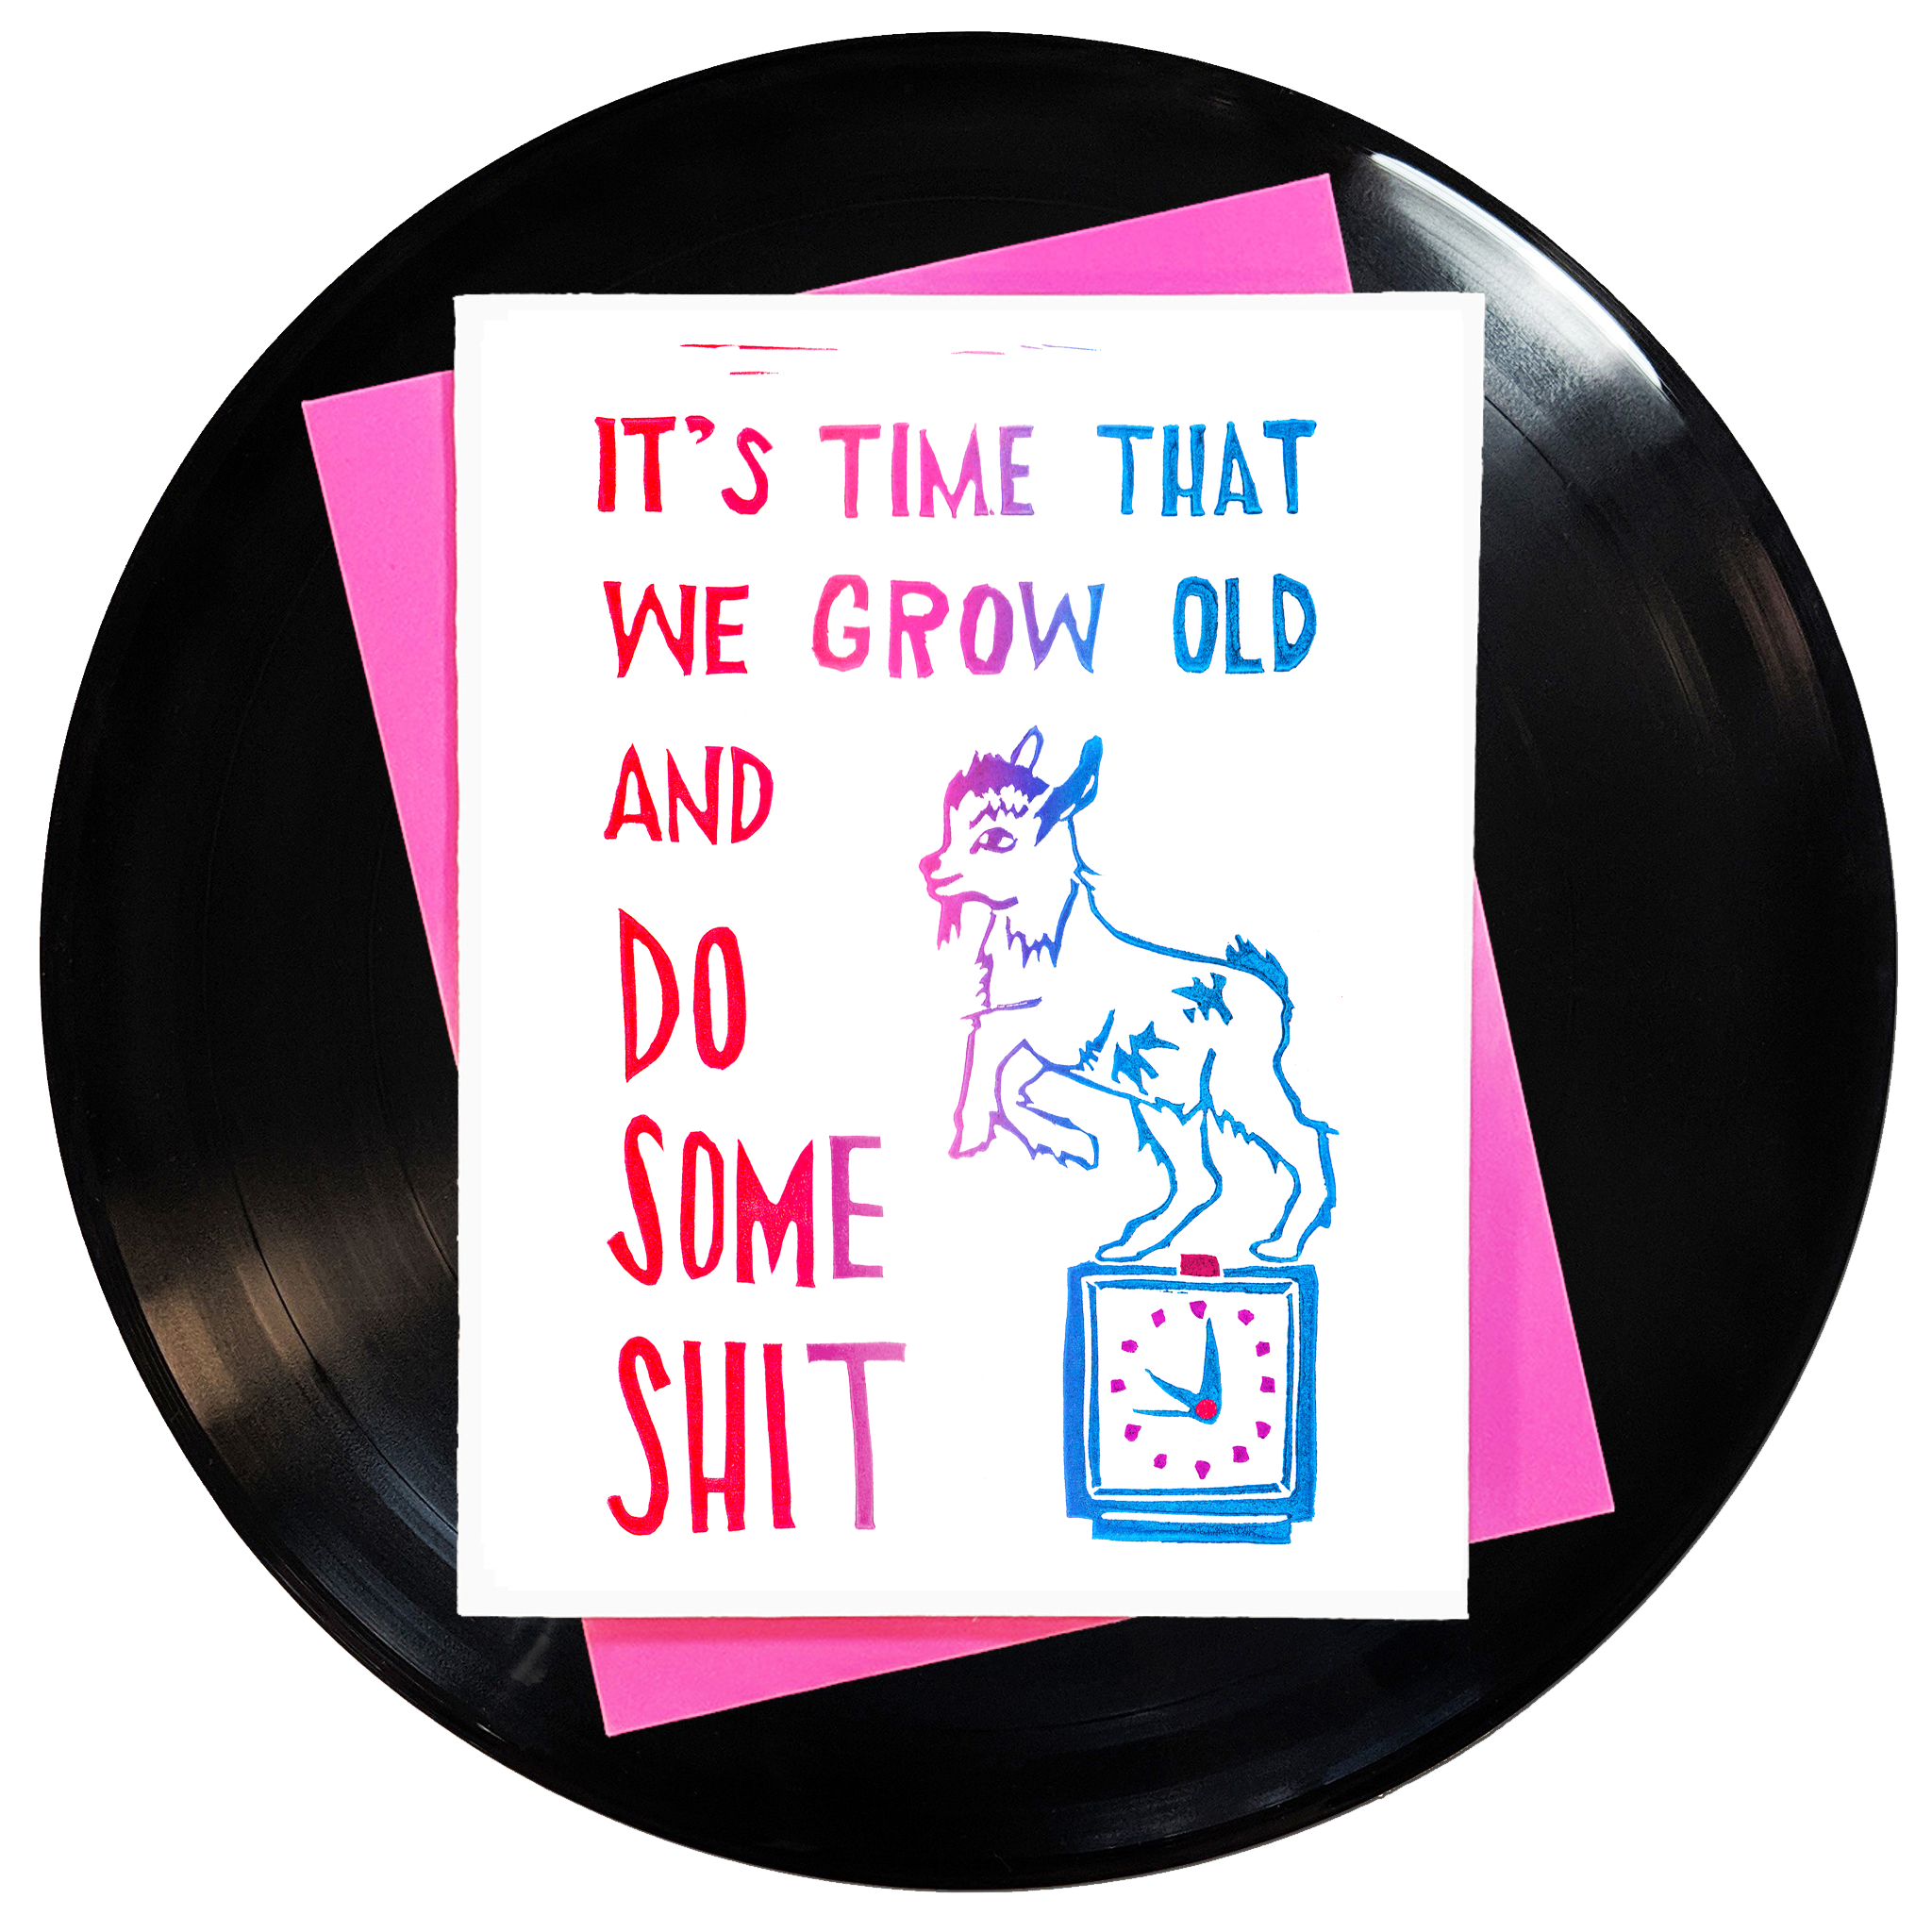 It's Time That We Grow Old And Do Some Shit Greeting Card Inspired By Music